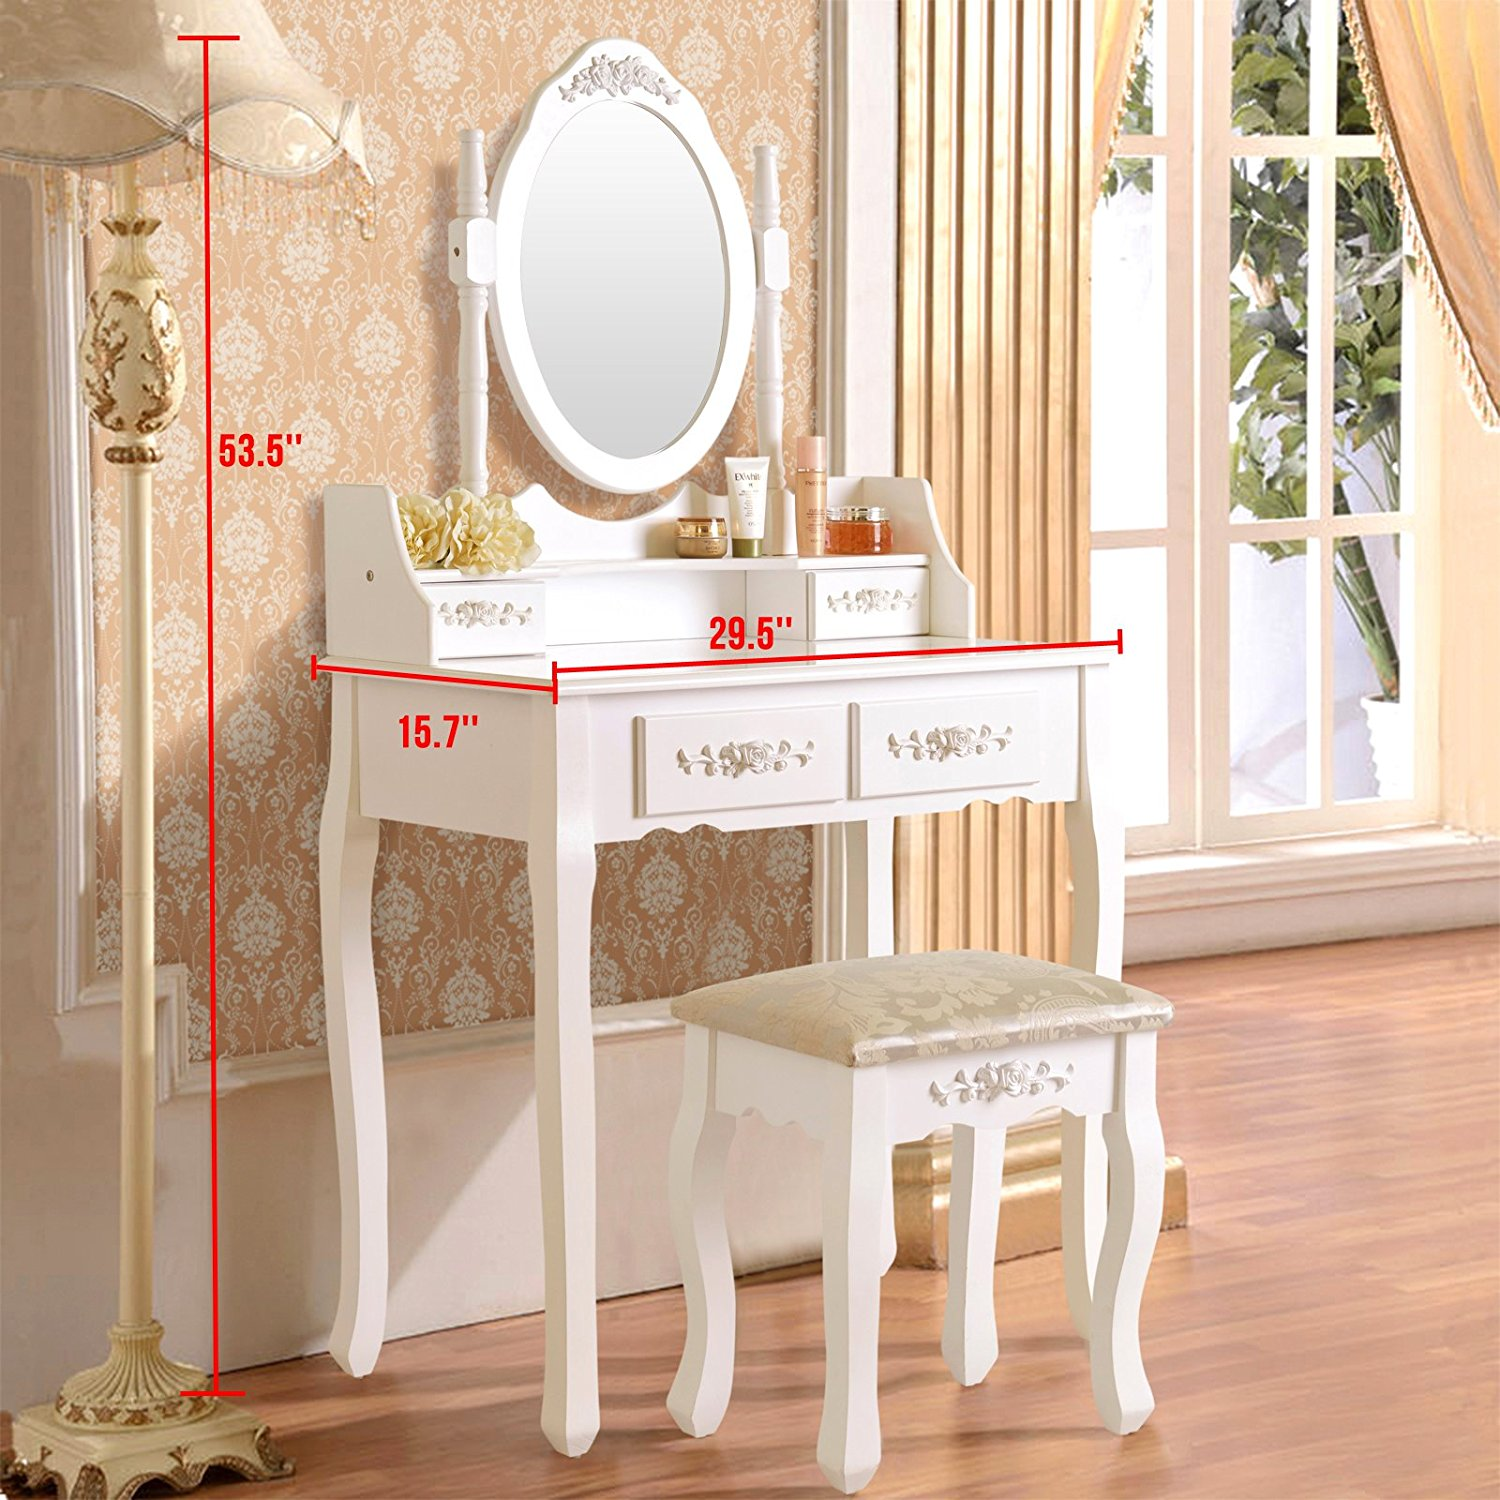 Ktaxon Elegance White Dressing Table Vanity And Stool Set Wood Makeup Desk With 4 Drawers Mirror